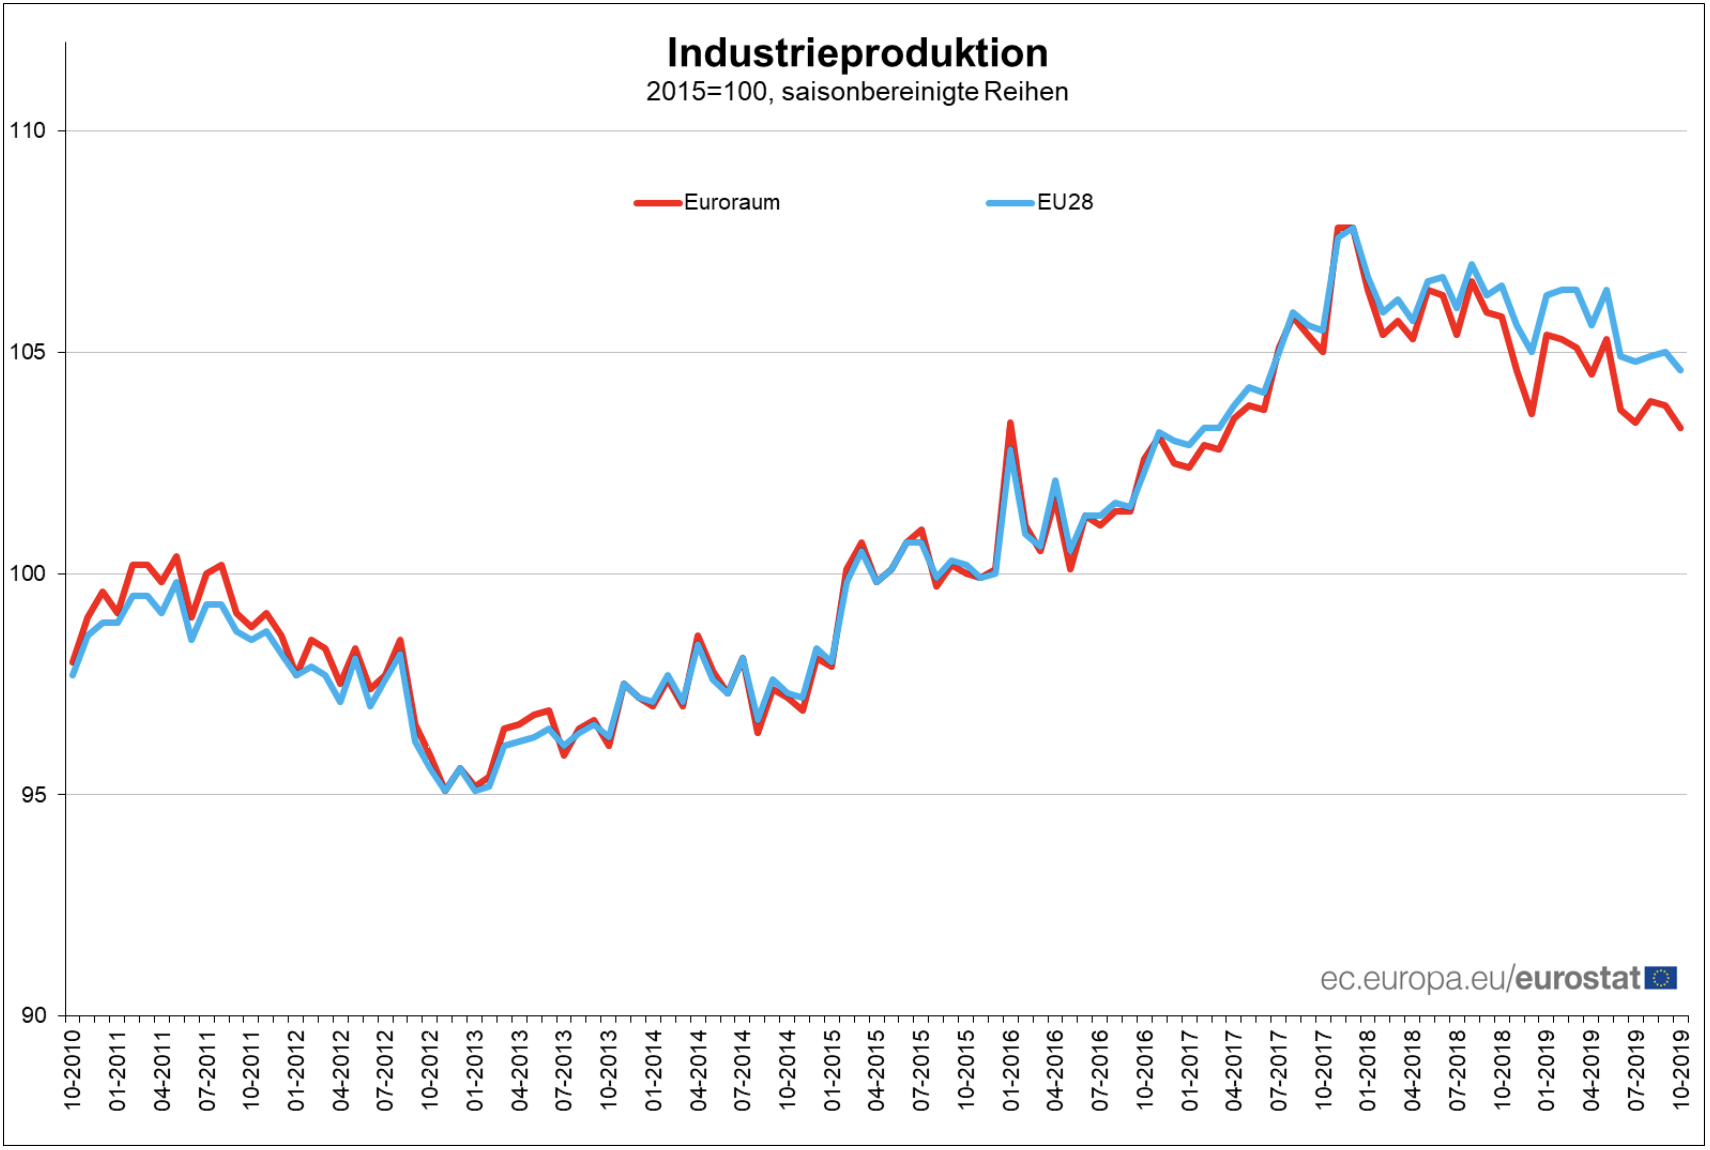 Statistik der Industrieproduktion in der EU